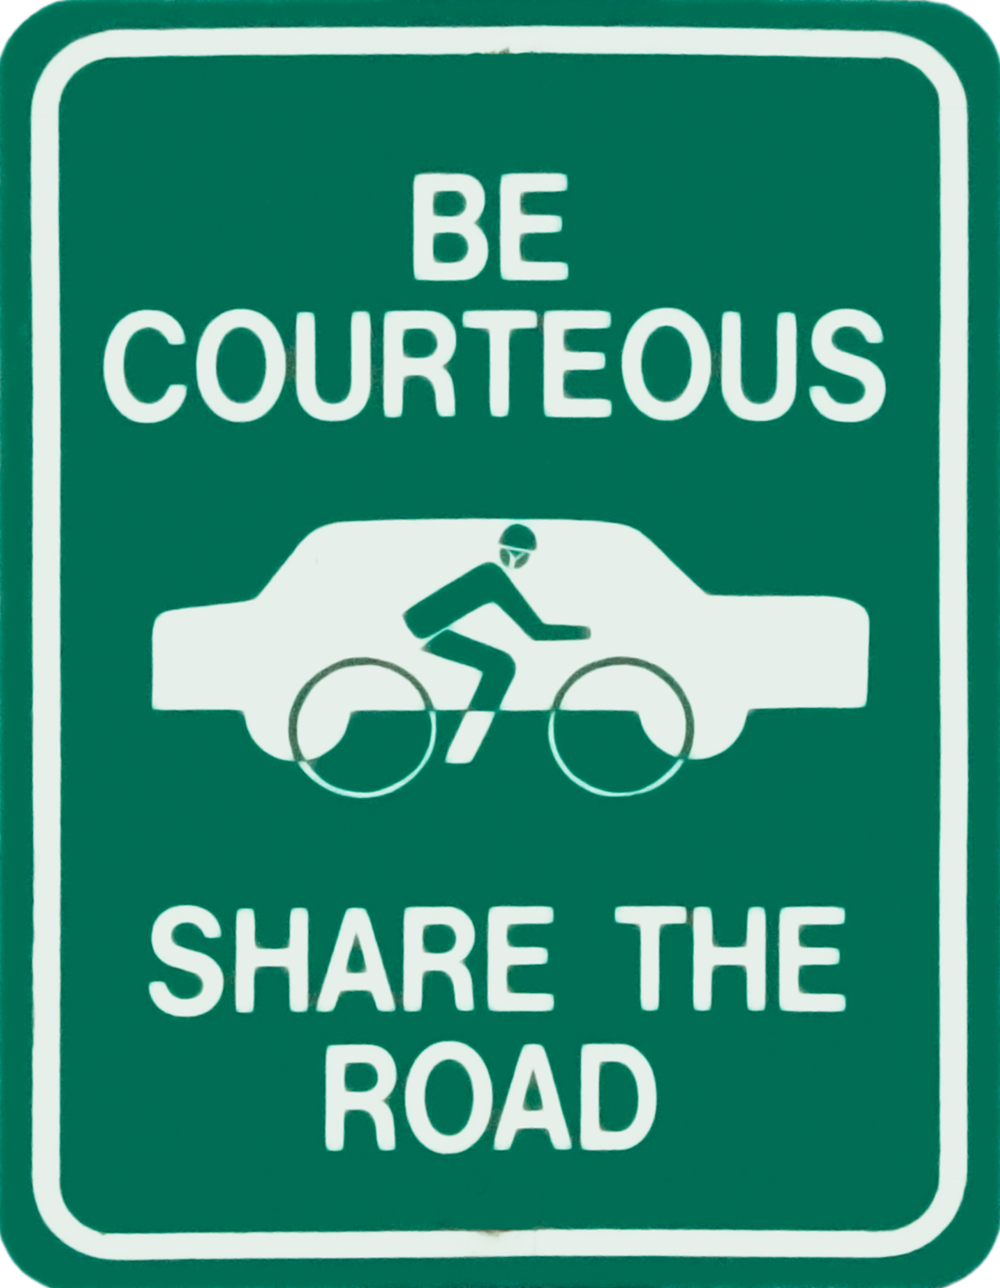 Be Courteous Share Road.png